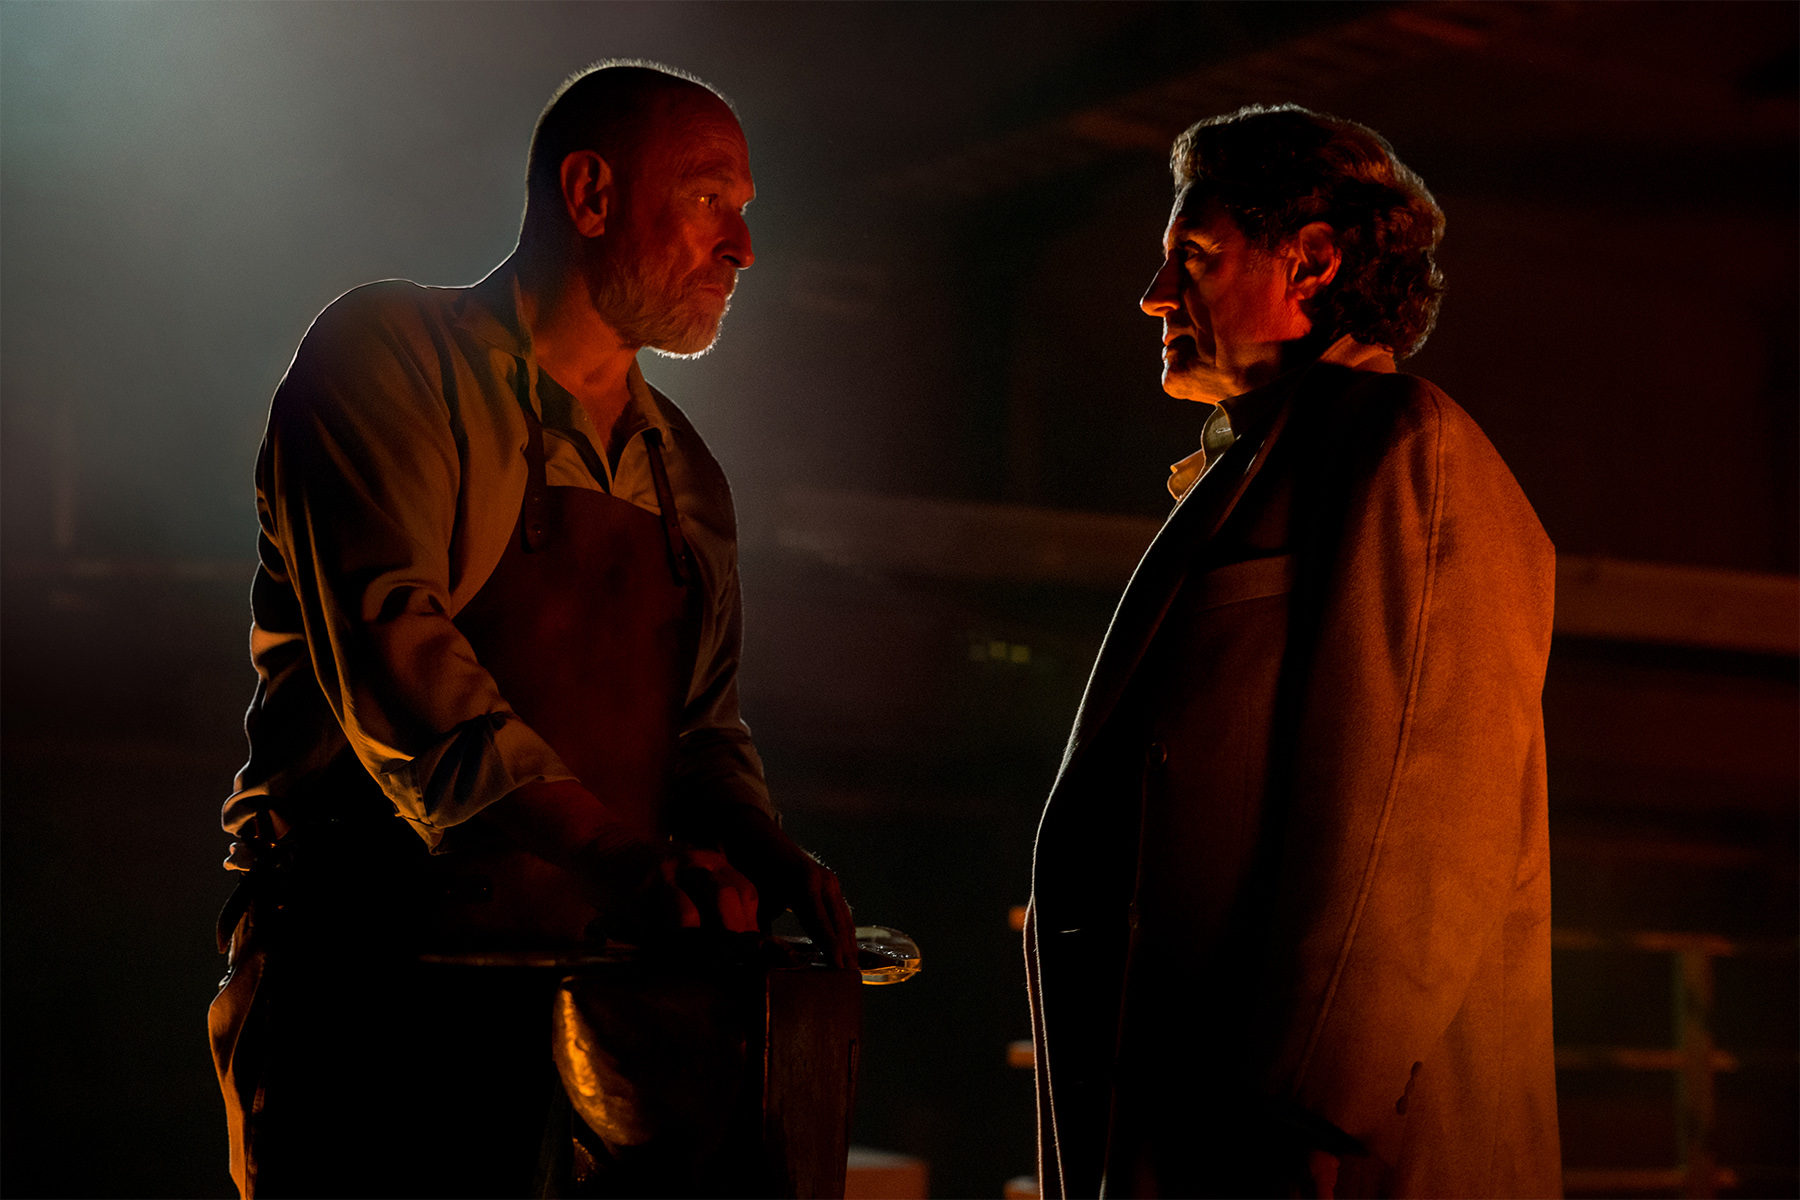 American Gods Episode 106 Recap & Review - 'A Murder of Gods'